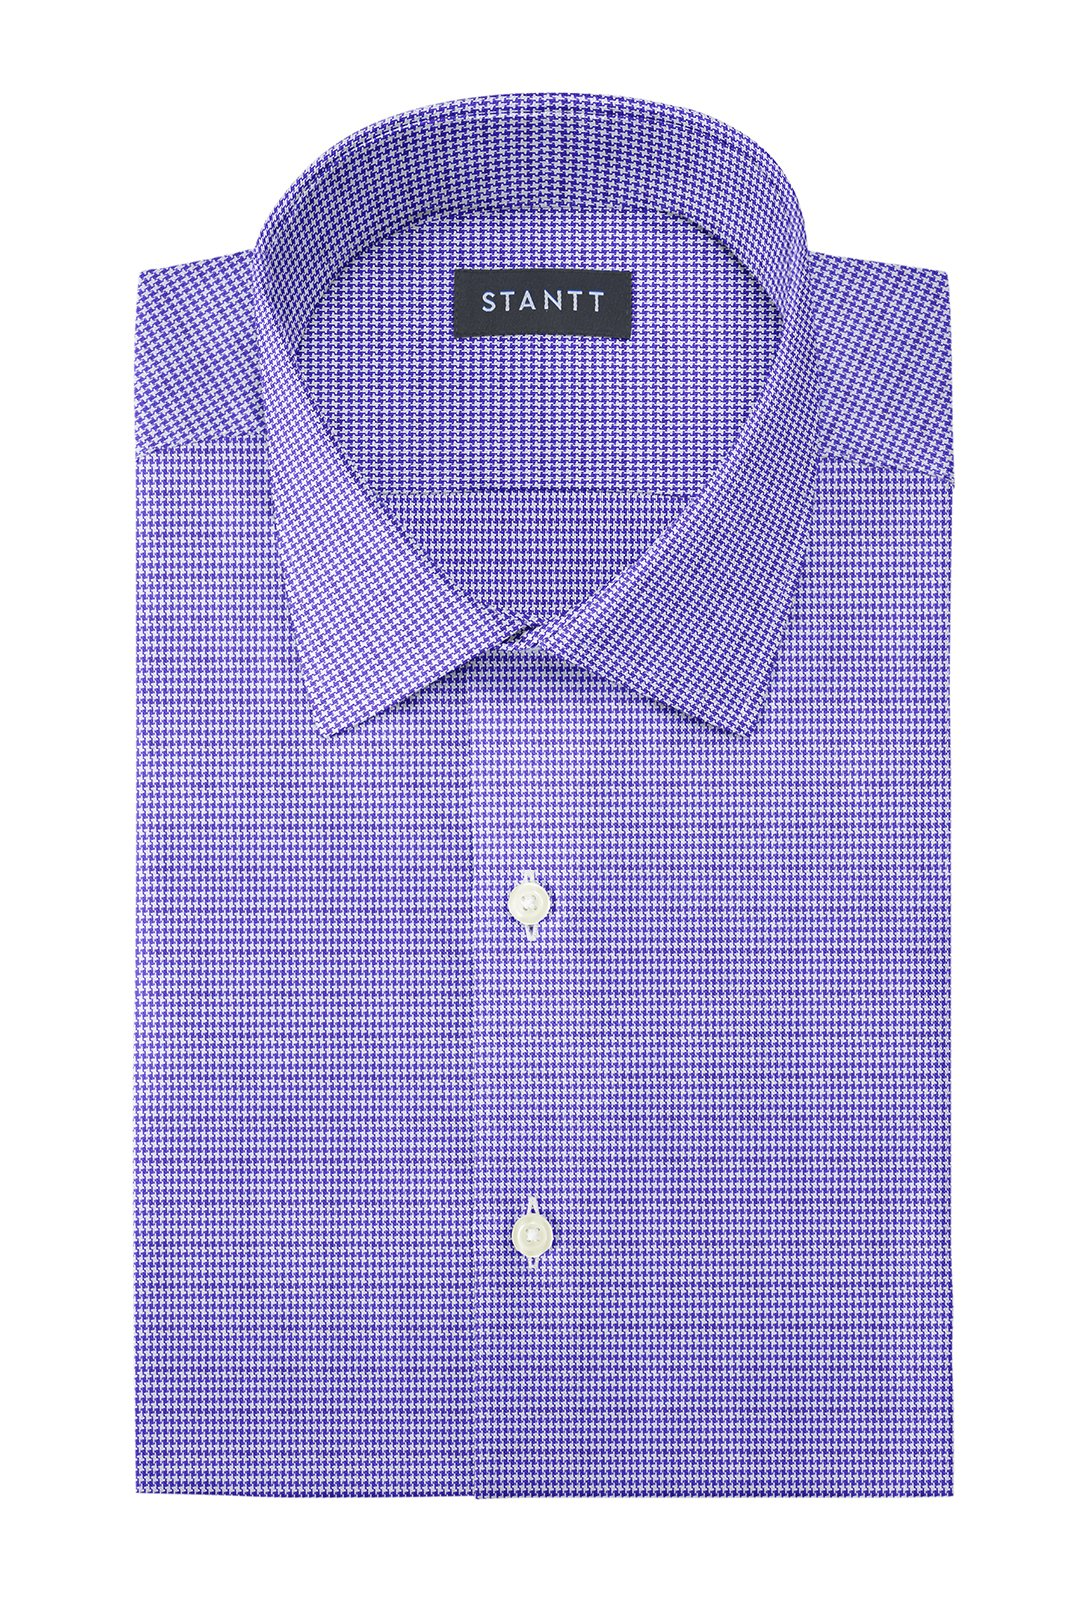 Purple Fancy Houndstooth: Modified-Spread Collar, Barrel Cuff